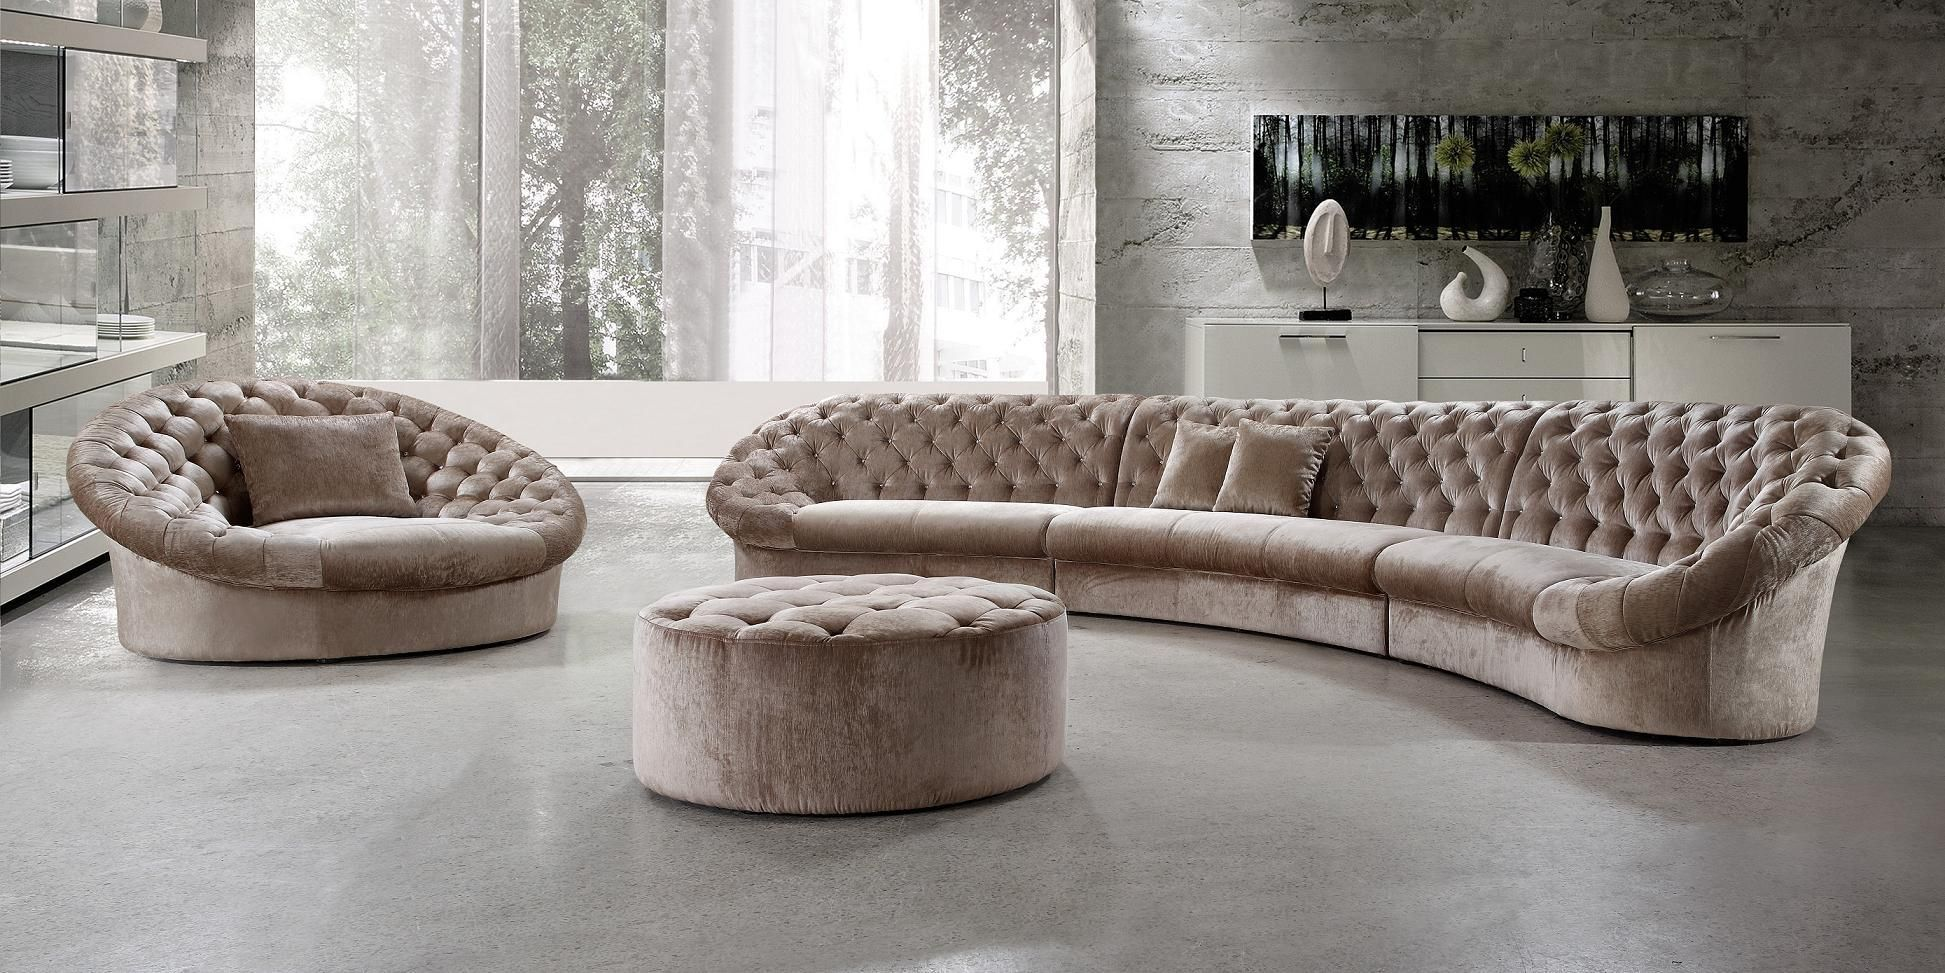 Stunning Big Round Sofa Chair In Living Room Sofas From Furniture